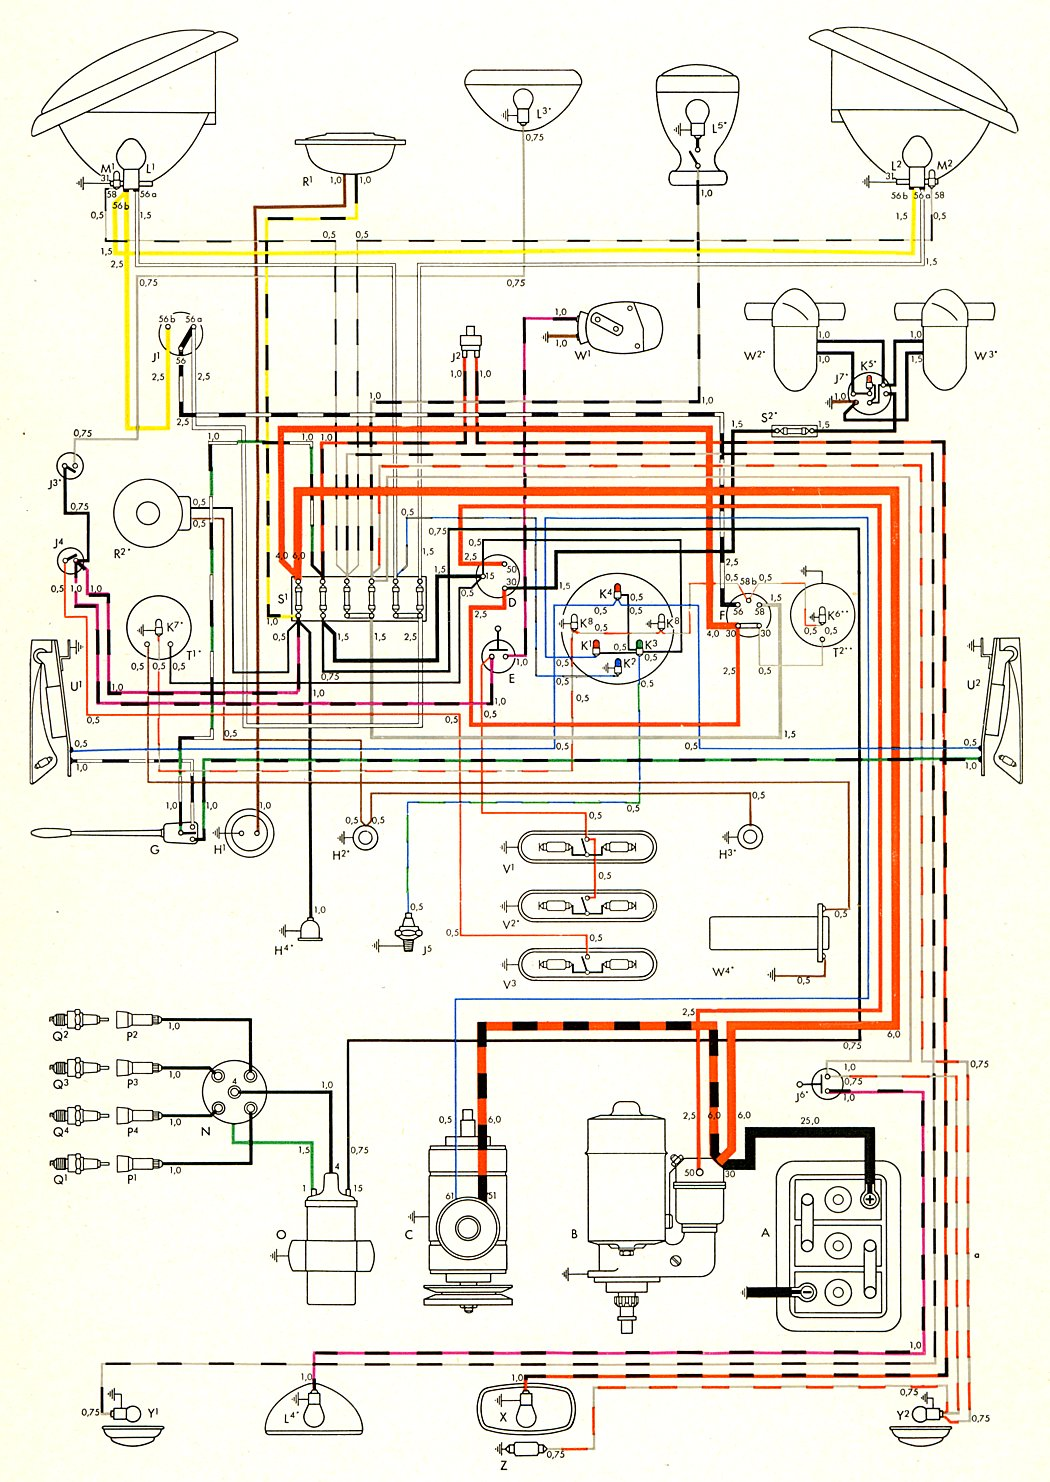 bus_nov57 1957 bus wiring diagram thegoldenbug com 1971 vw bus wiring diagram at bakdesigns.co